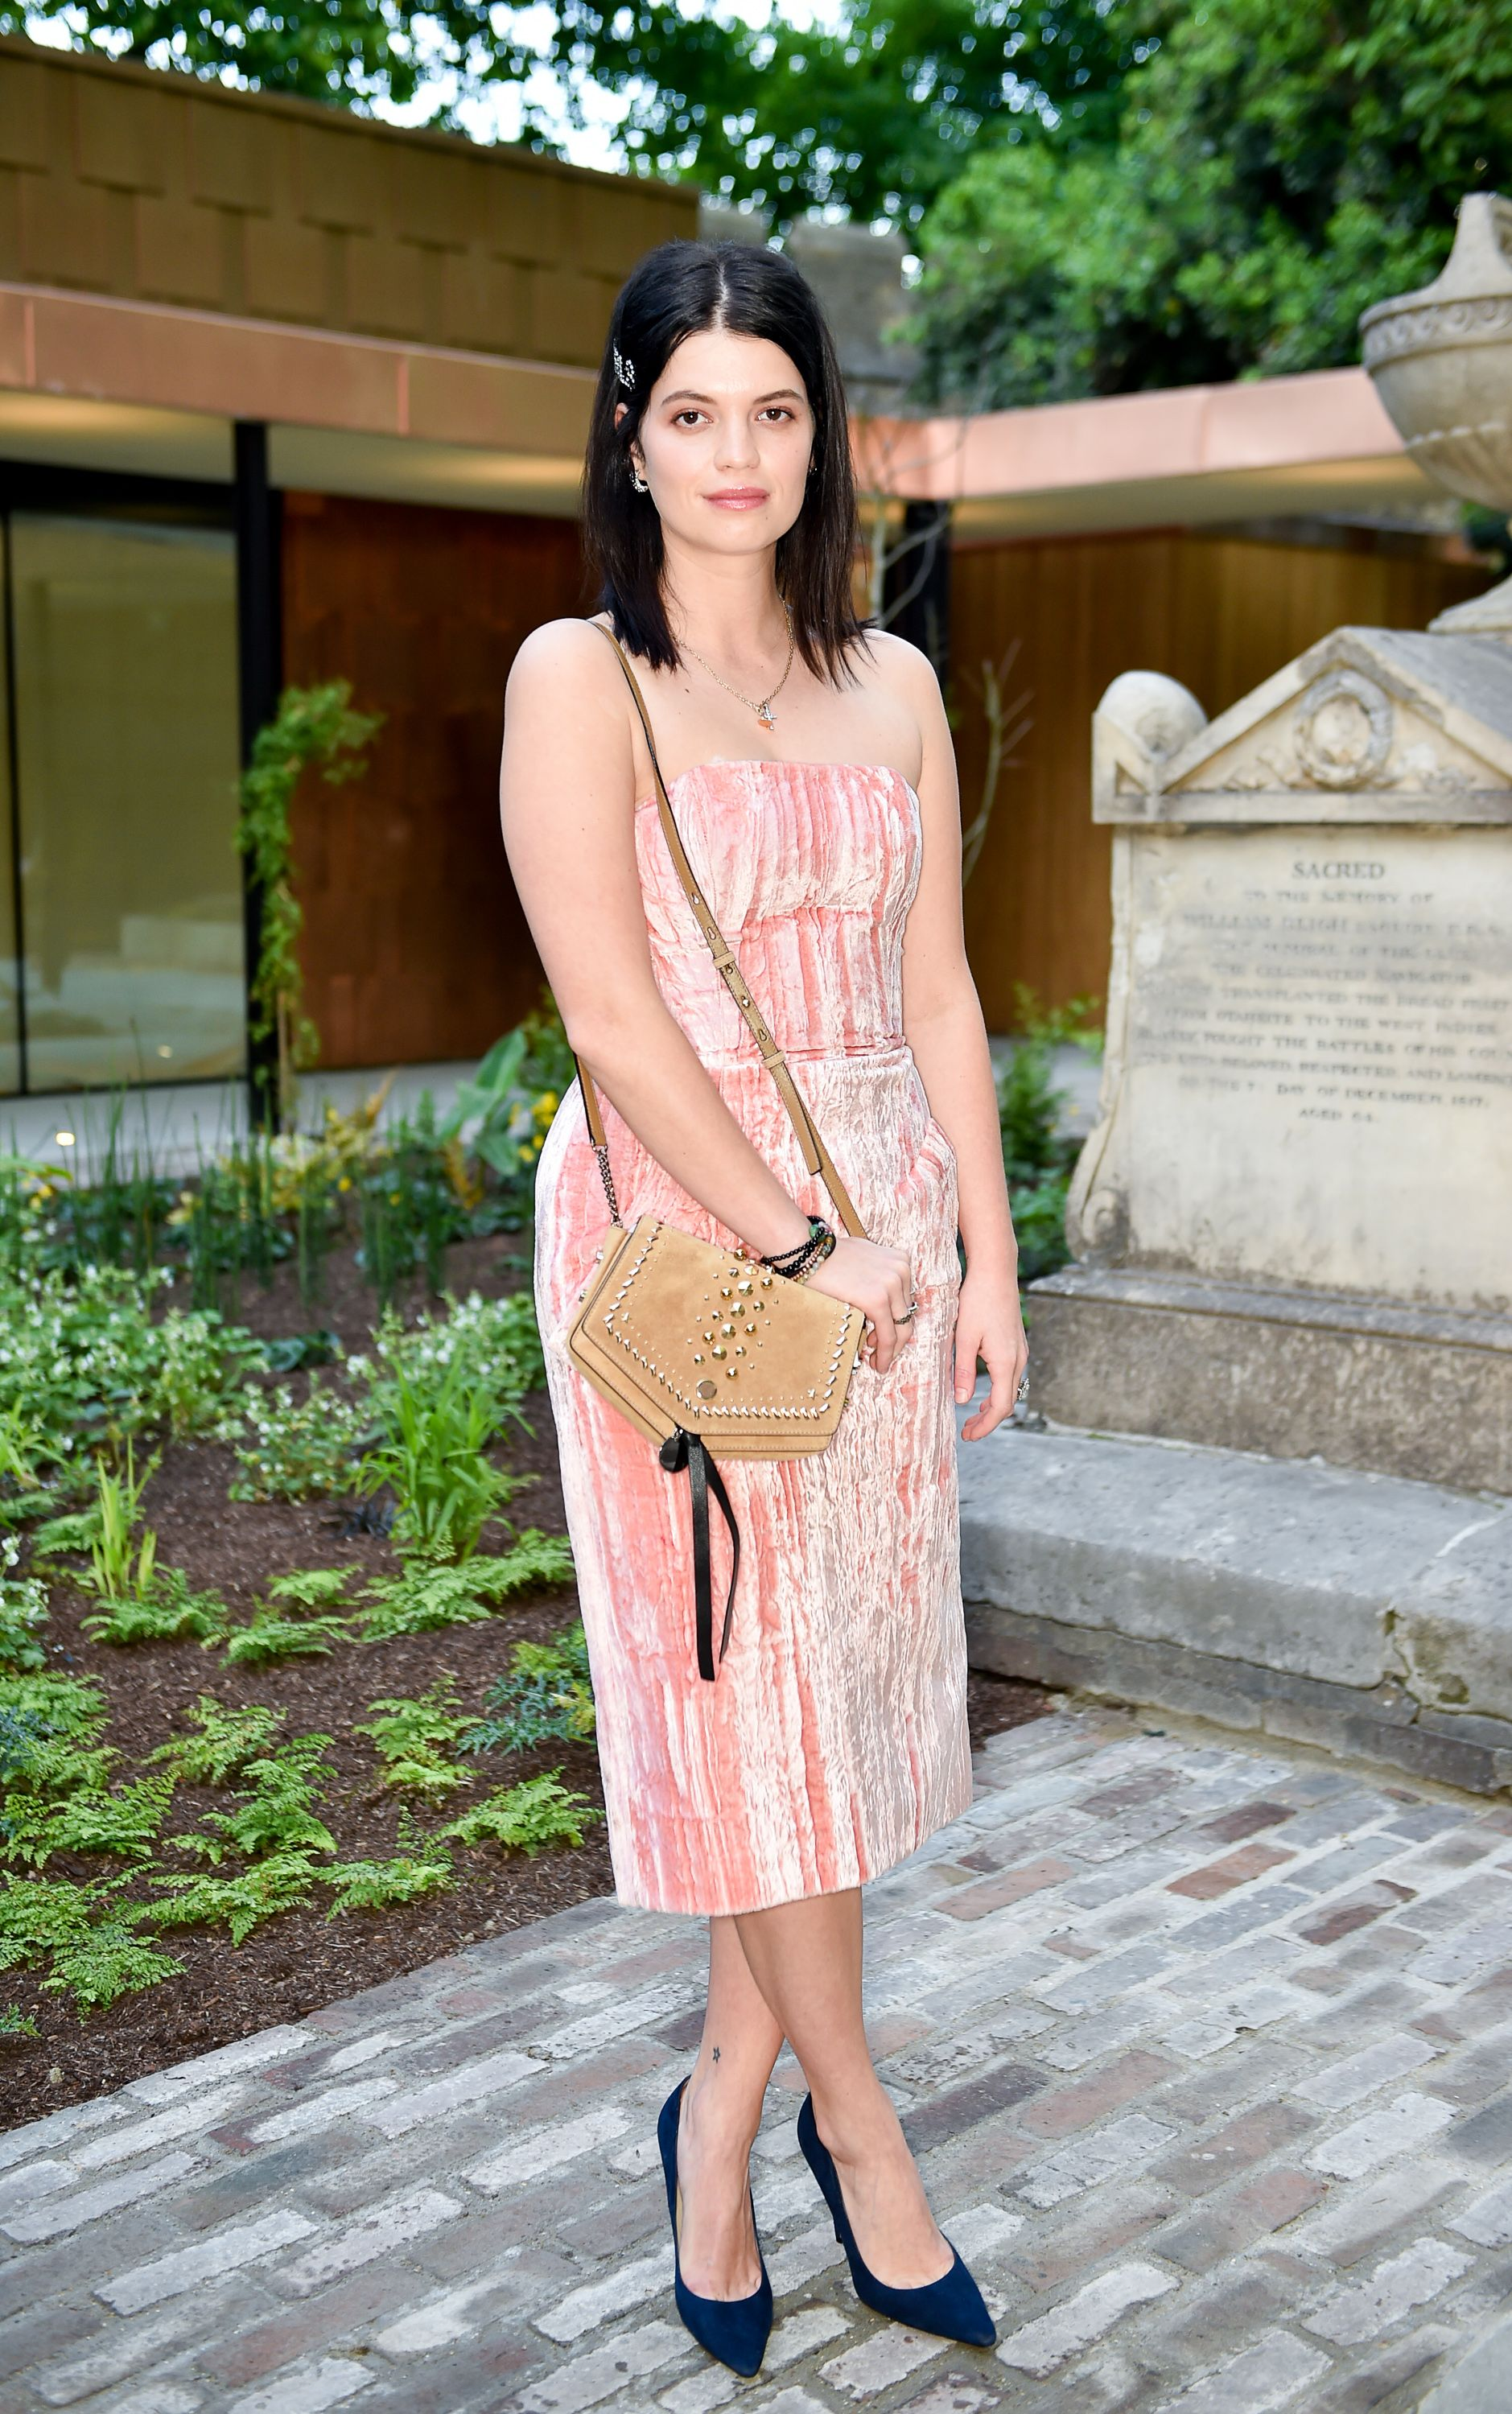 21cac77ce5ca Pixie Geldof in a oh-so chic velvet dress at the Jimmy Choo x mytheresa  dinner at the Garden Museum in London.